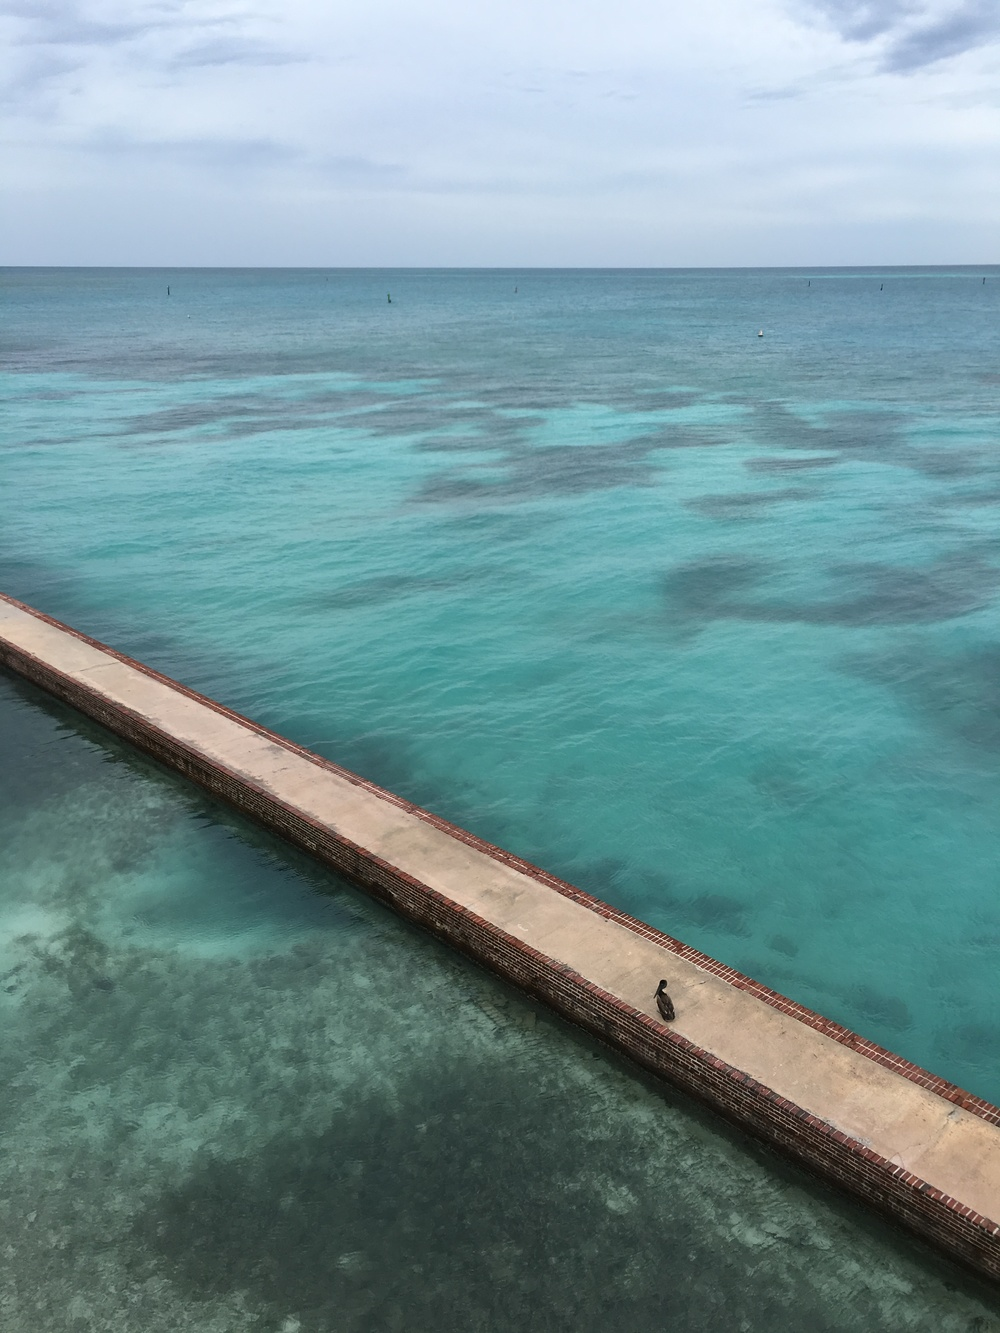 Moat wall at Dry Tortugas National Park. Photo credit: Jonathan Irish